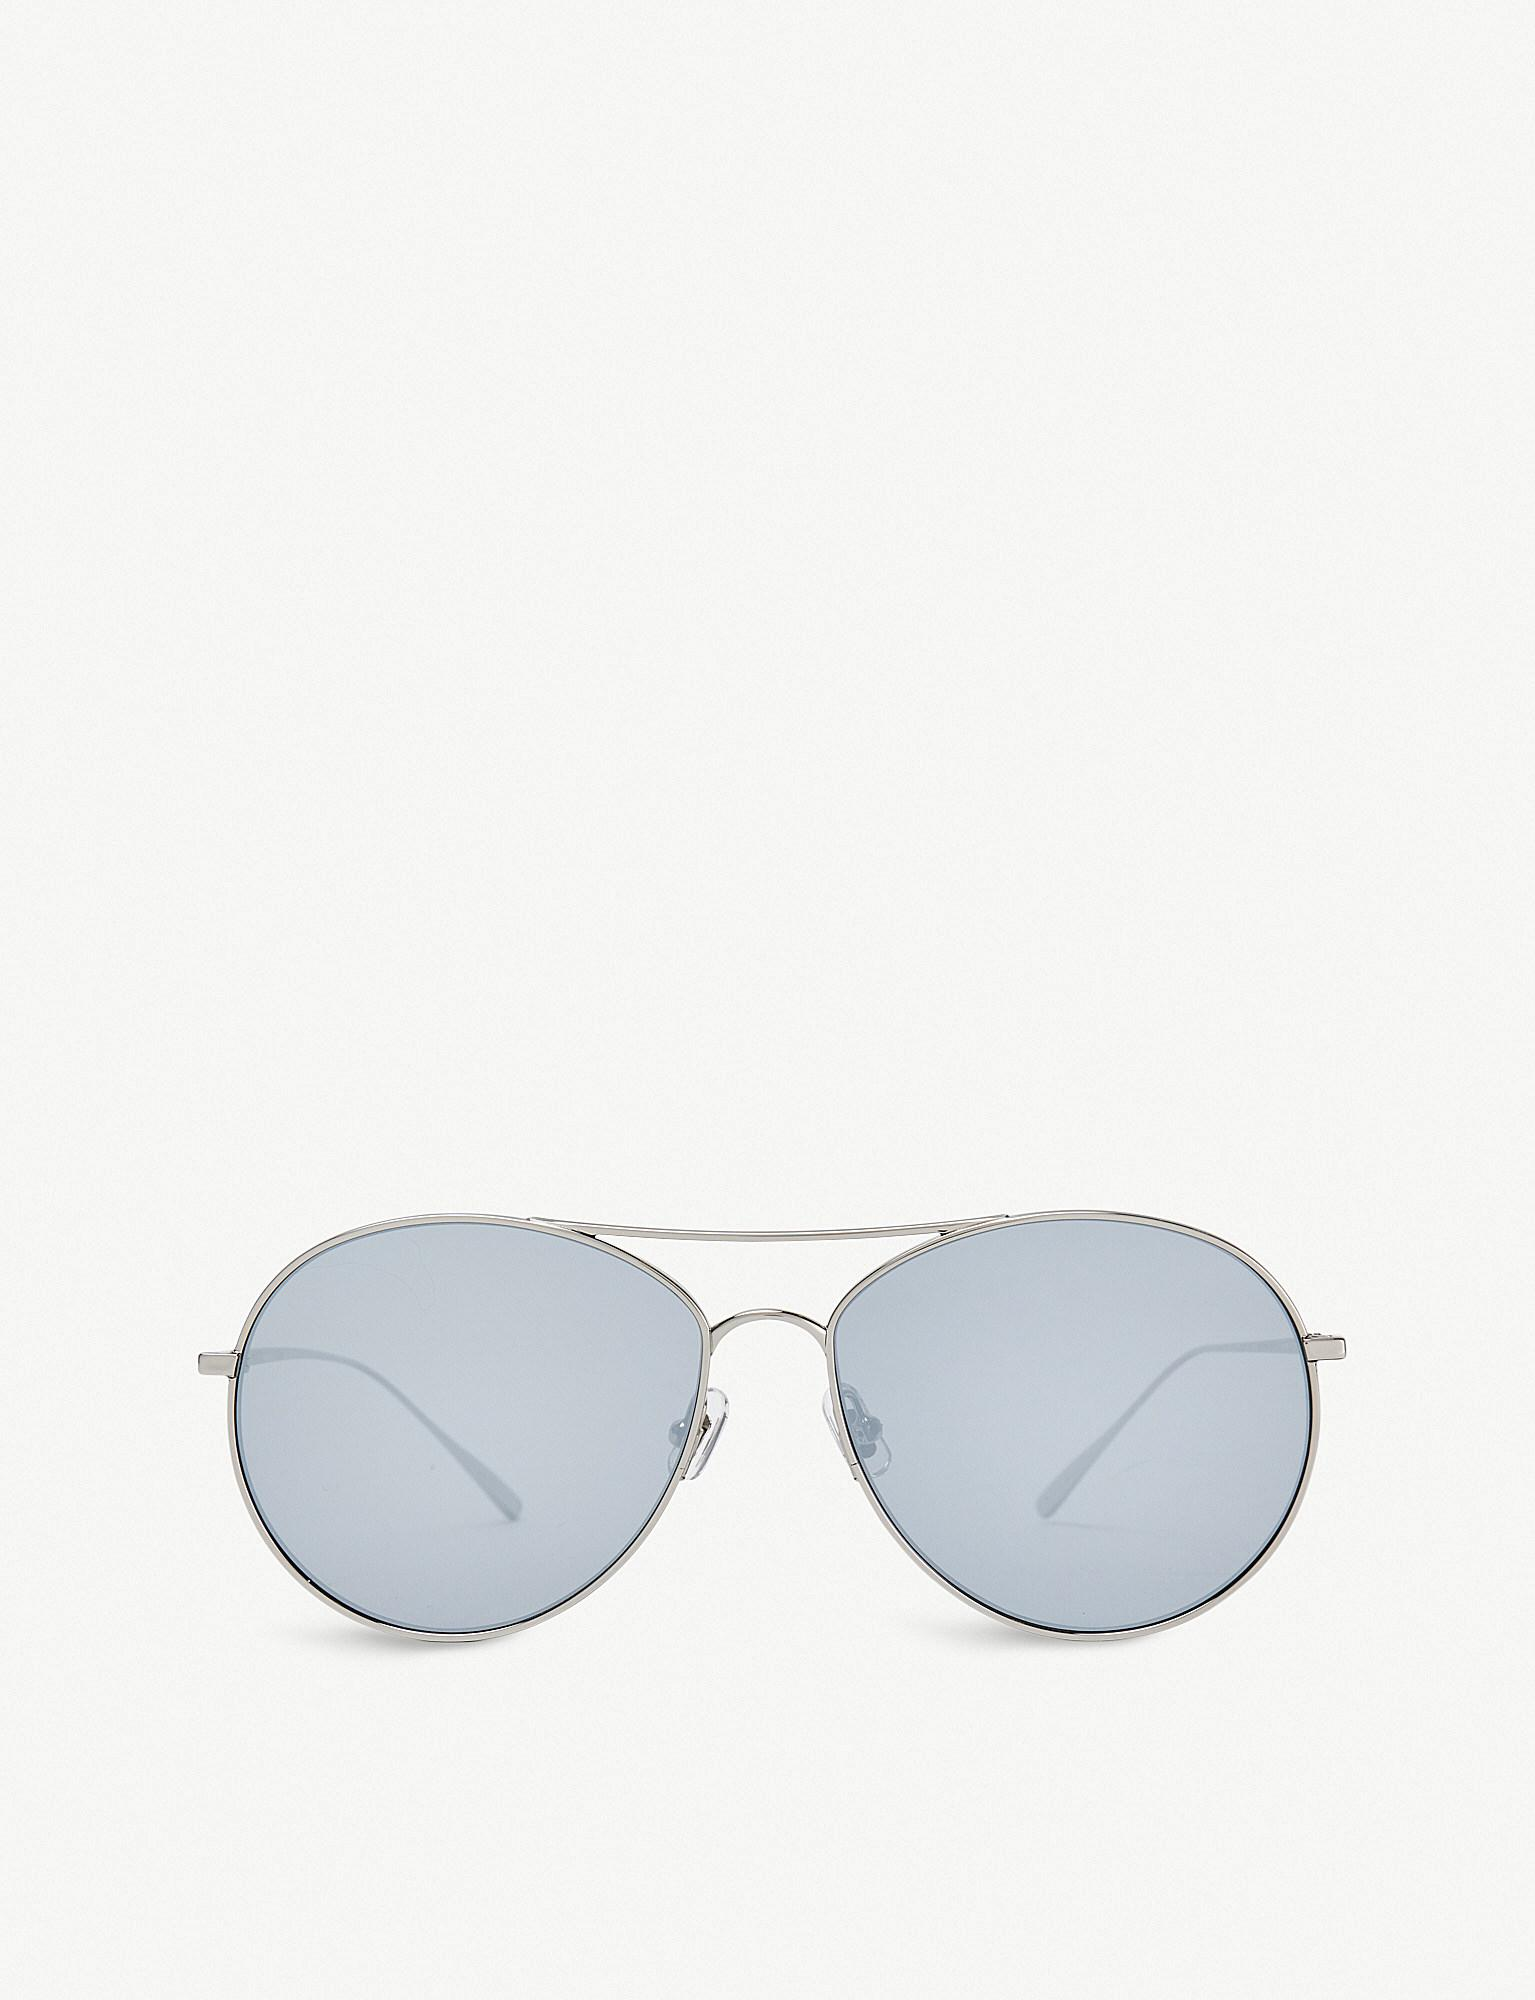 afed9861a2f0 Lyst - Gentle Monster Ranny Ring Monel And Titanium Sunglasses in ...